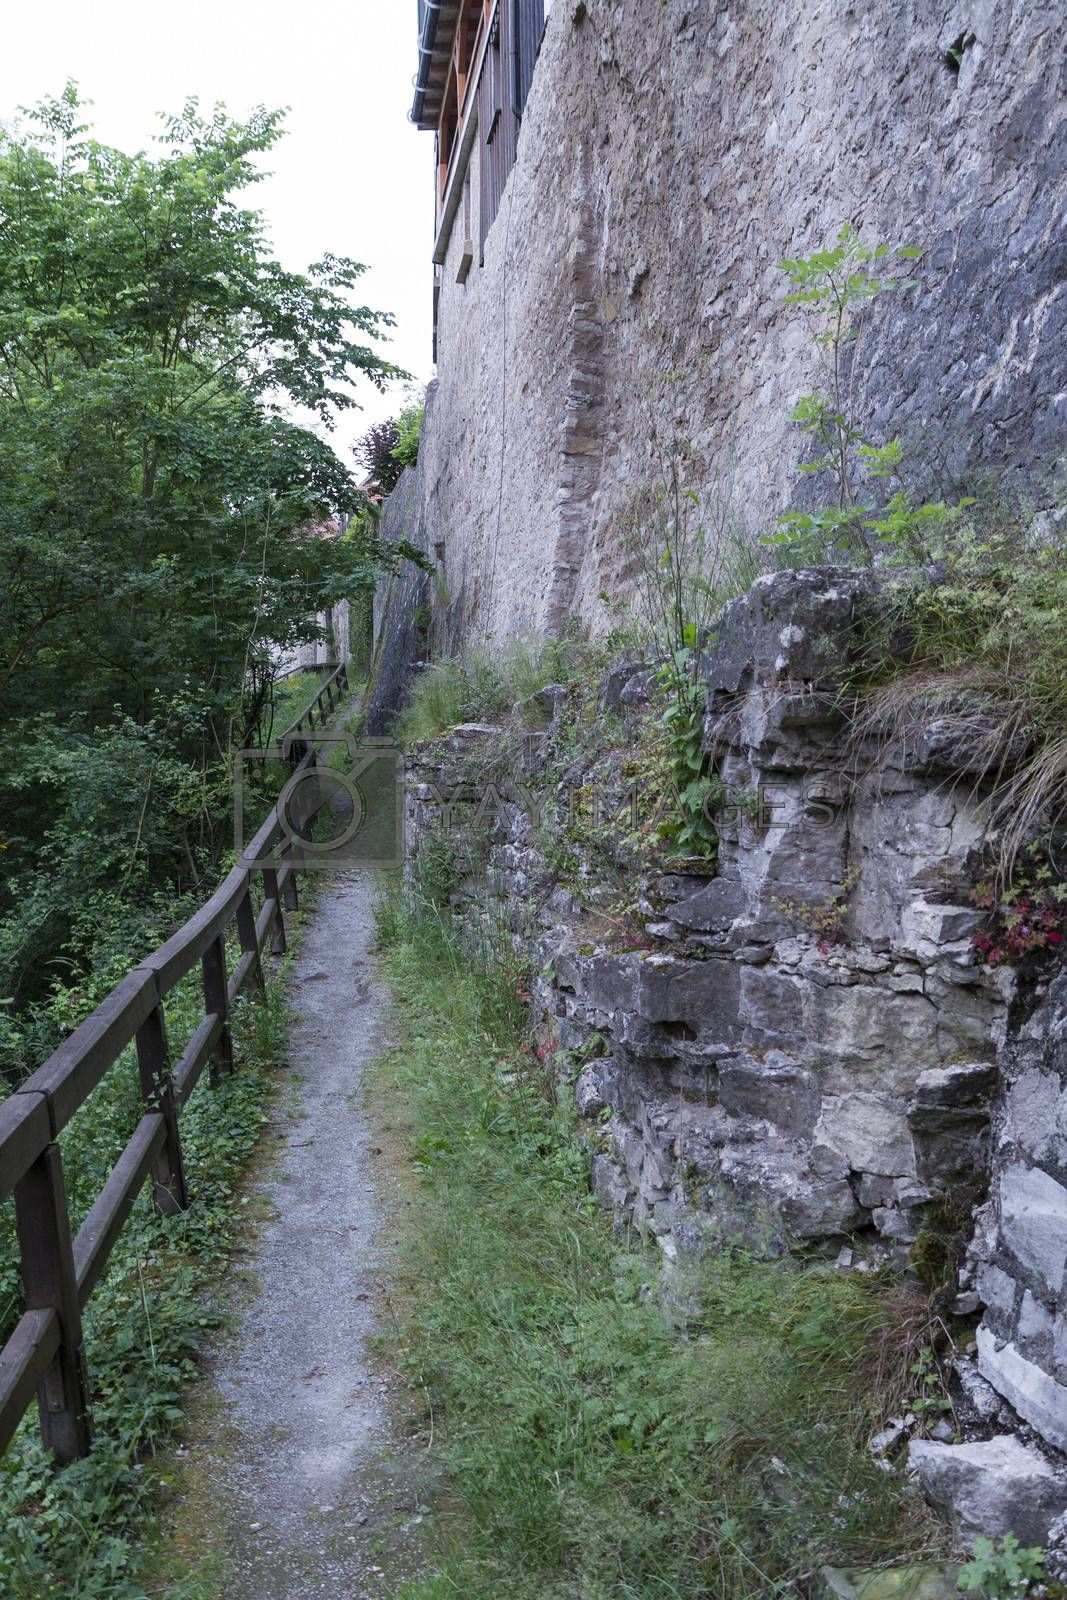 narrow foot path near the historic town of Vellberg, Germany. Steep wall at right side